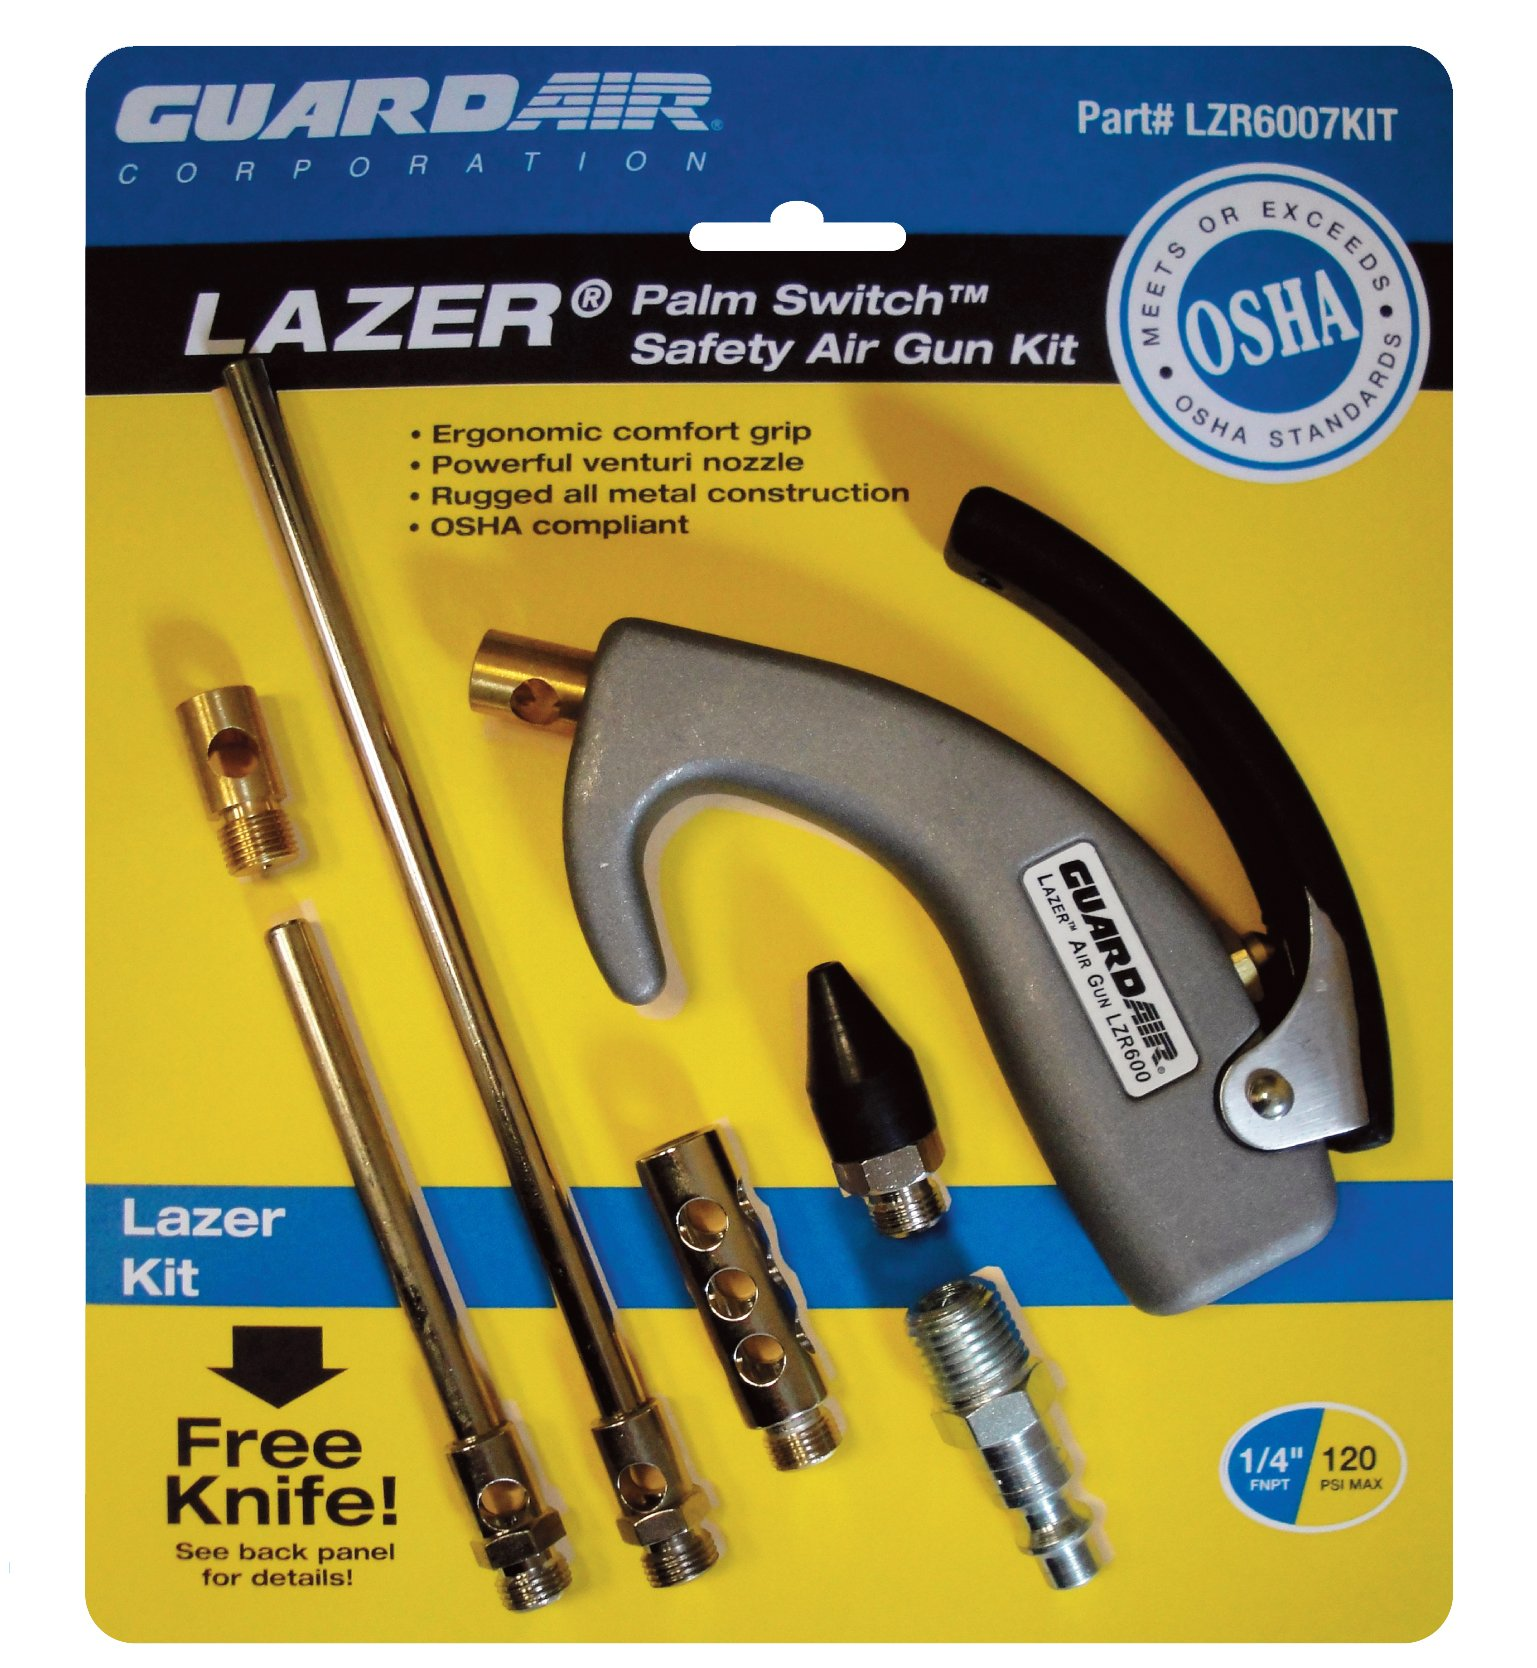 Guardair LZR6007KIT Lazer Palm Switch Safety Air Gun Kit